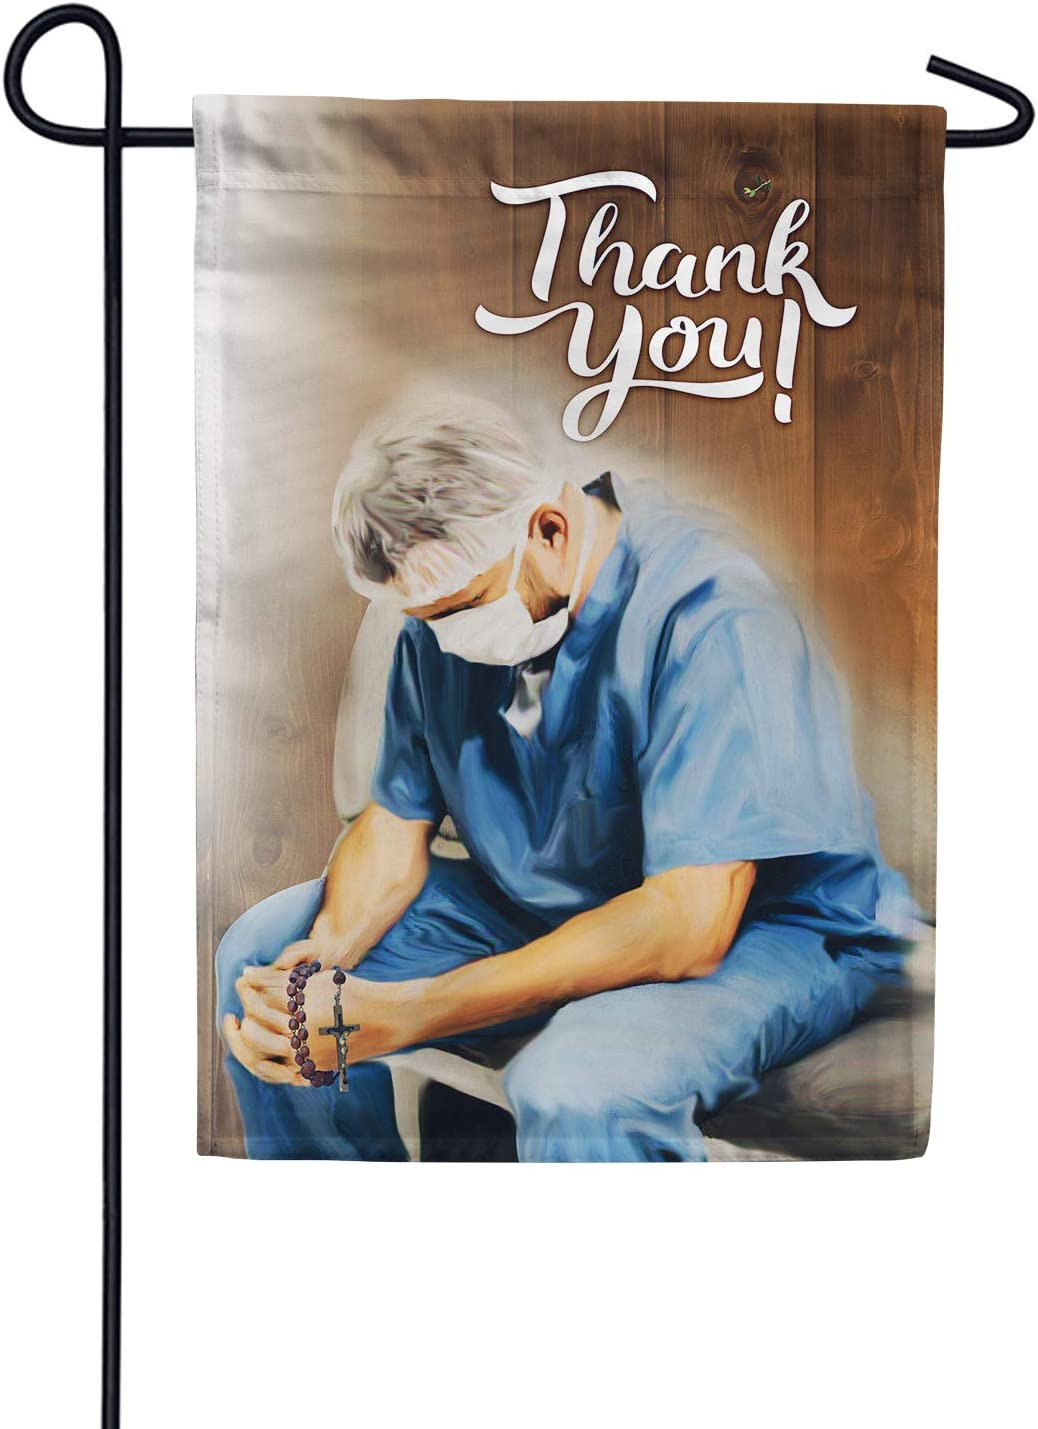 """America Forever Flags Double Sided Garden Flag - Praying for A Miracle - 12.5"""" x 18"""", Thank You Healthcare Workers, Fight Against Covid-19 Coronavirus Pandemic Flag, Yard Outdoor Decor Flags"""